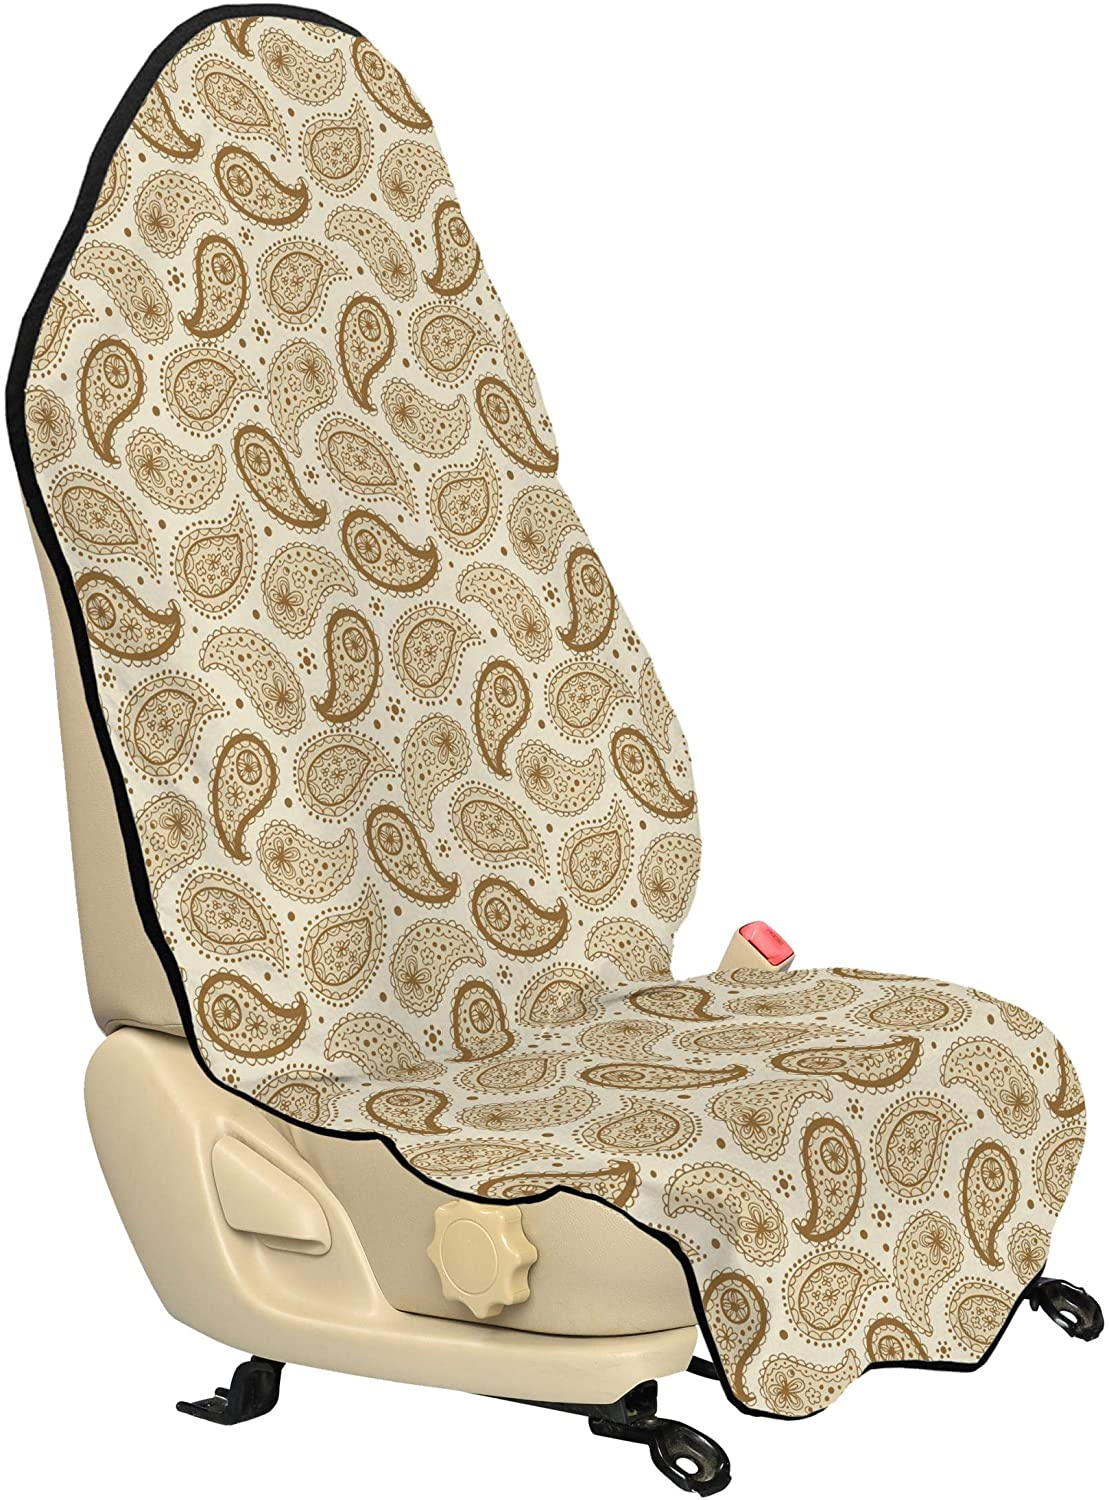 Lunarable Ivory Car Seat Hoodie, Persian Paisley Motifs Oriental Teardrop Shapes with Curved Tip Traditional Pattern, Car Seat Cover Protector Non Slip Backing Universal Fit, 30